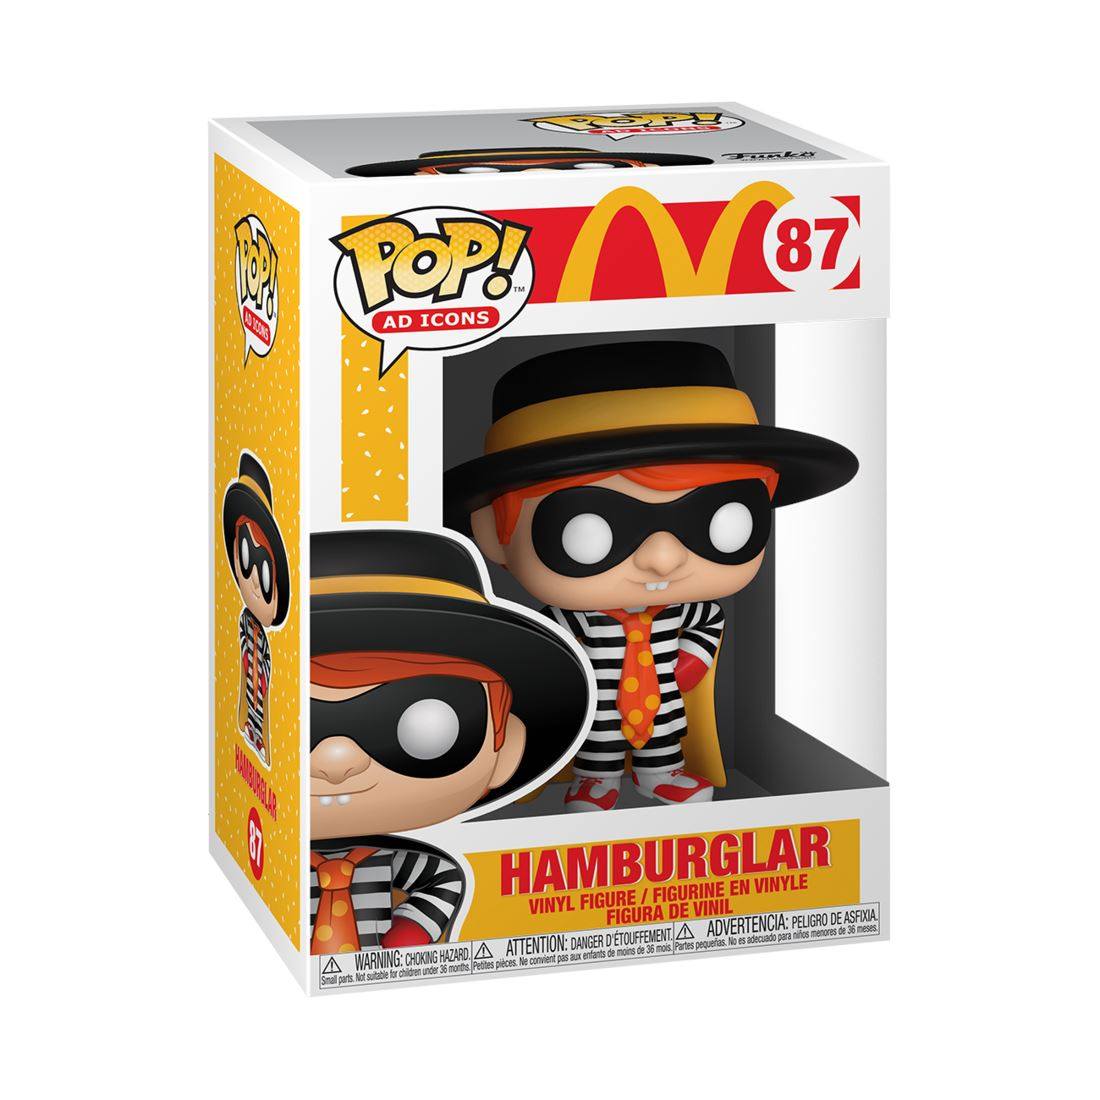 Hamburglar #87 McDonalds Funko POP! Ad Icons [PRE-ORDER] Pop! Funko